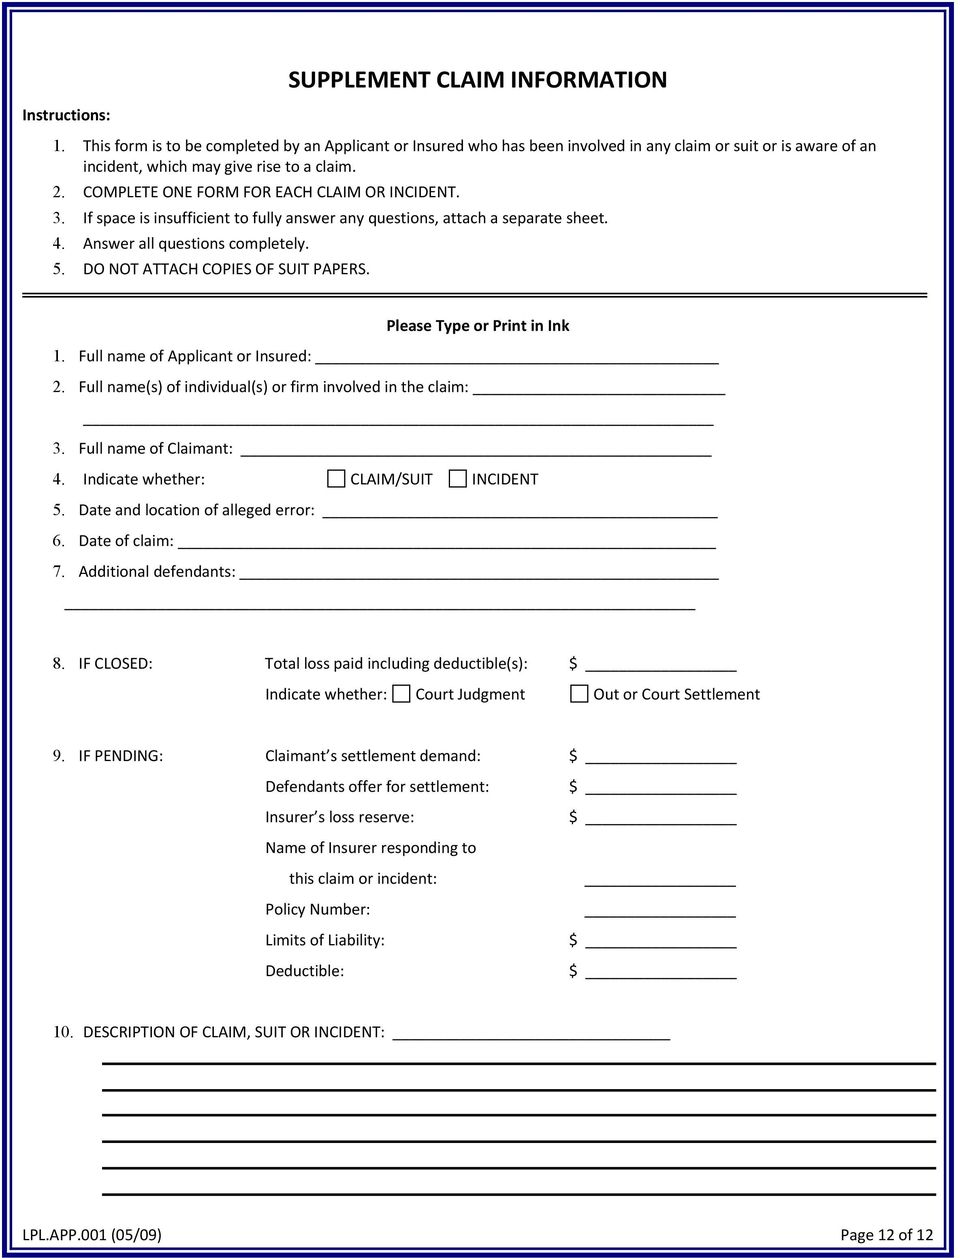 COMPLETE ONE FORM FOR EACH CLAIM OR INCIDENT. 3. If space is insufficient to fully answer any questions, attach a separate sheet. 4. Answer all questions completely. 5.